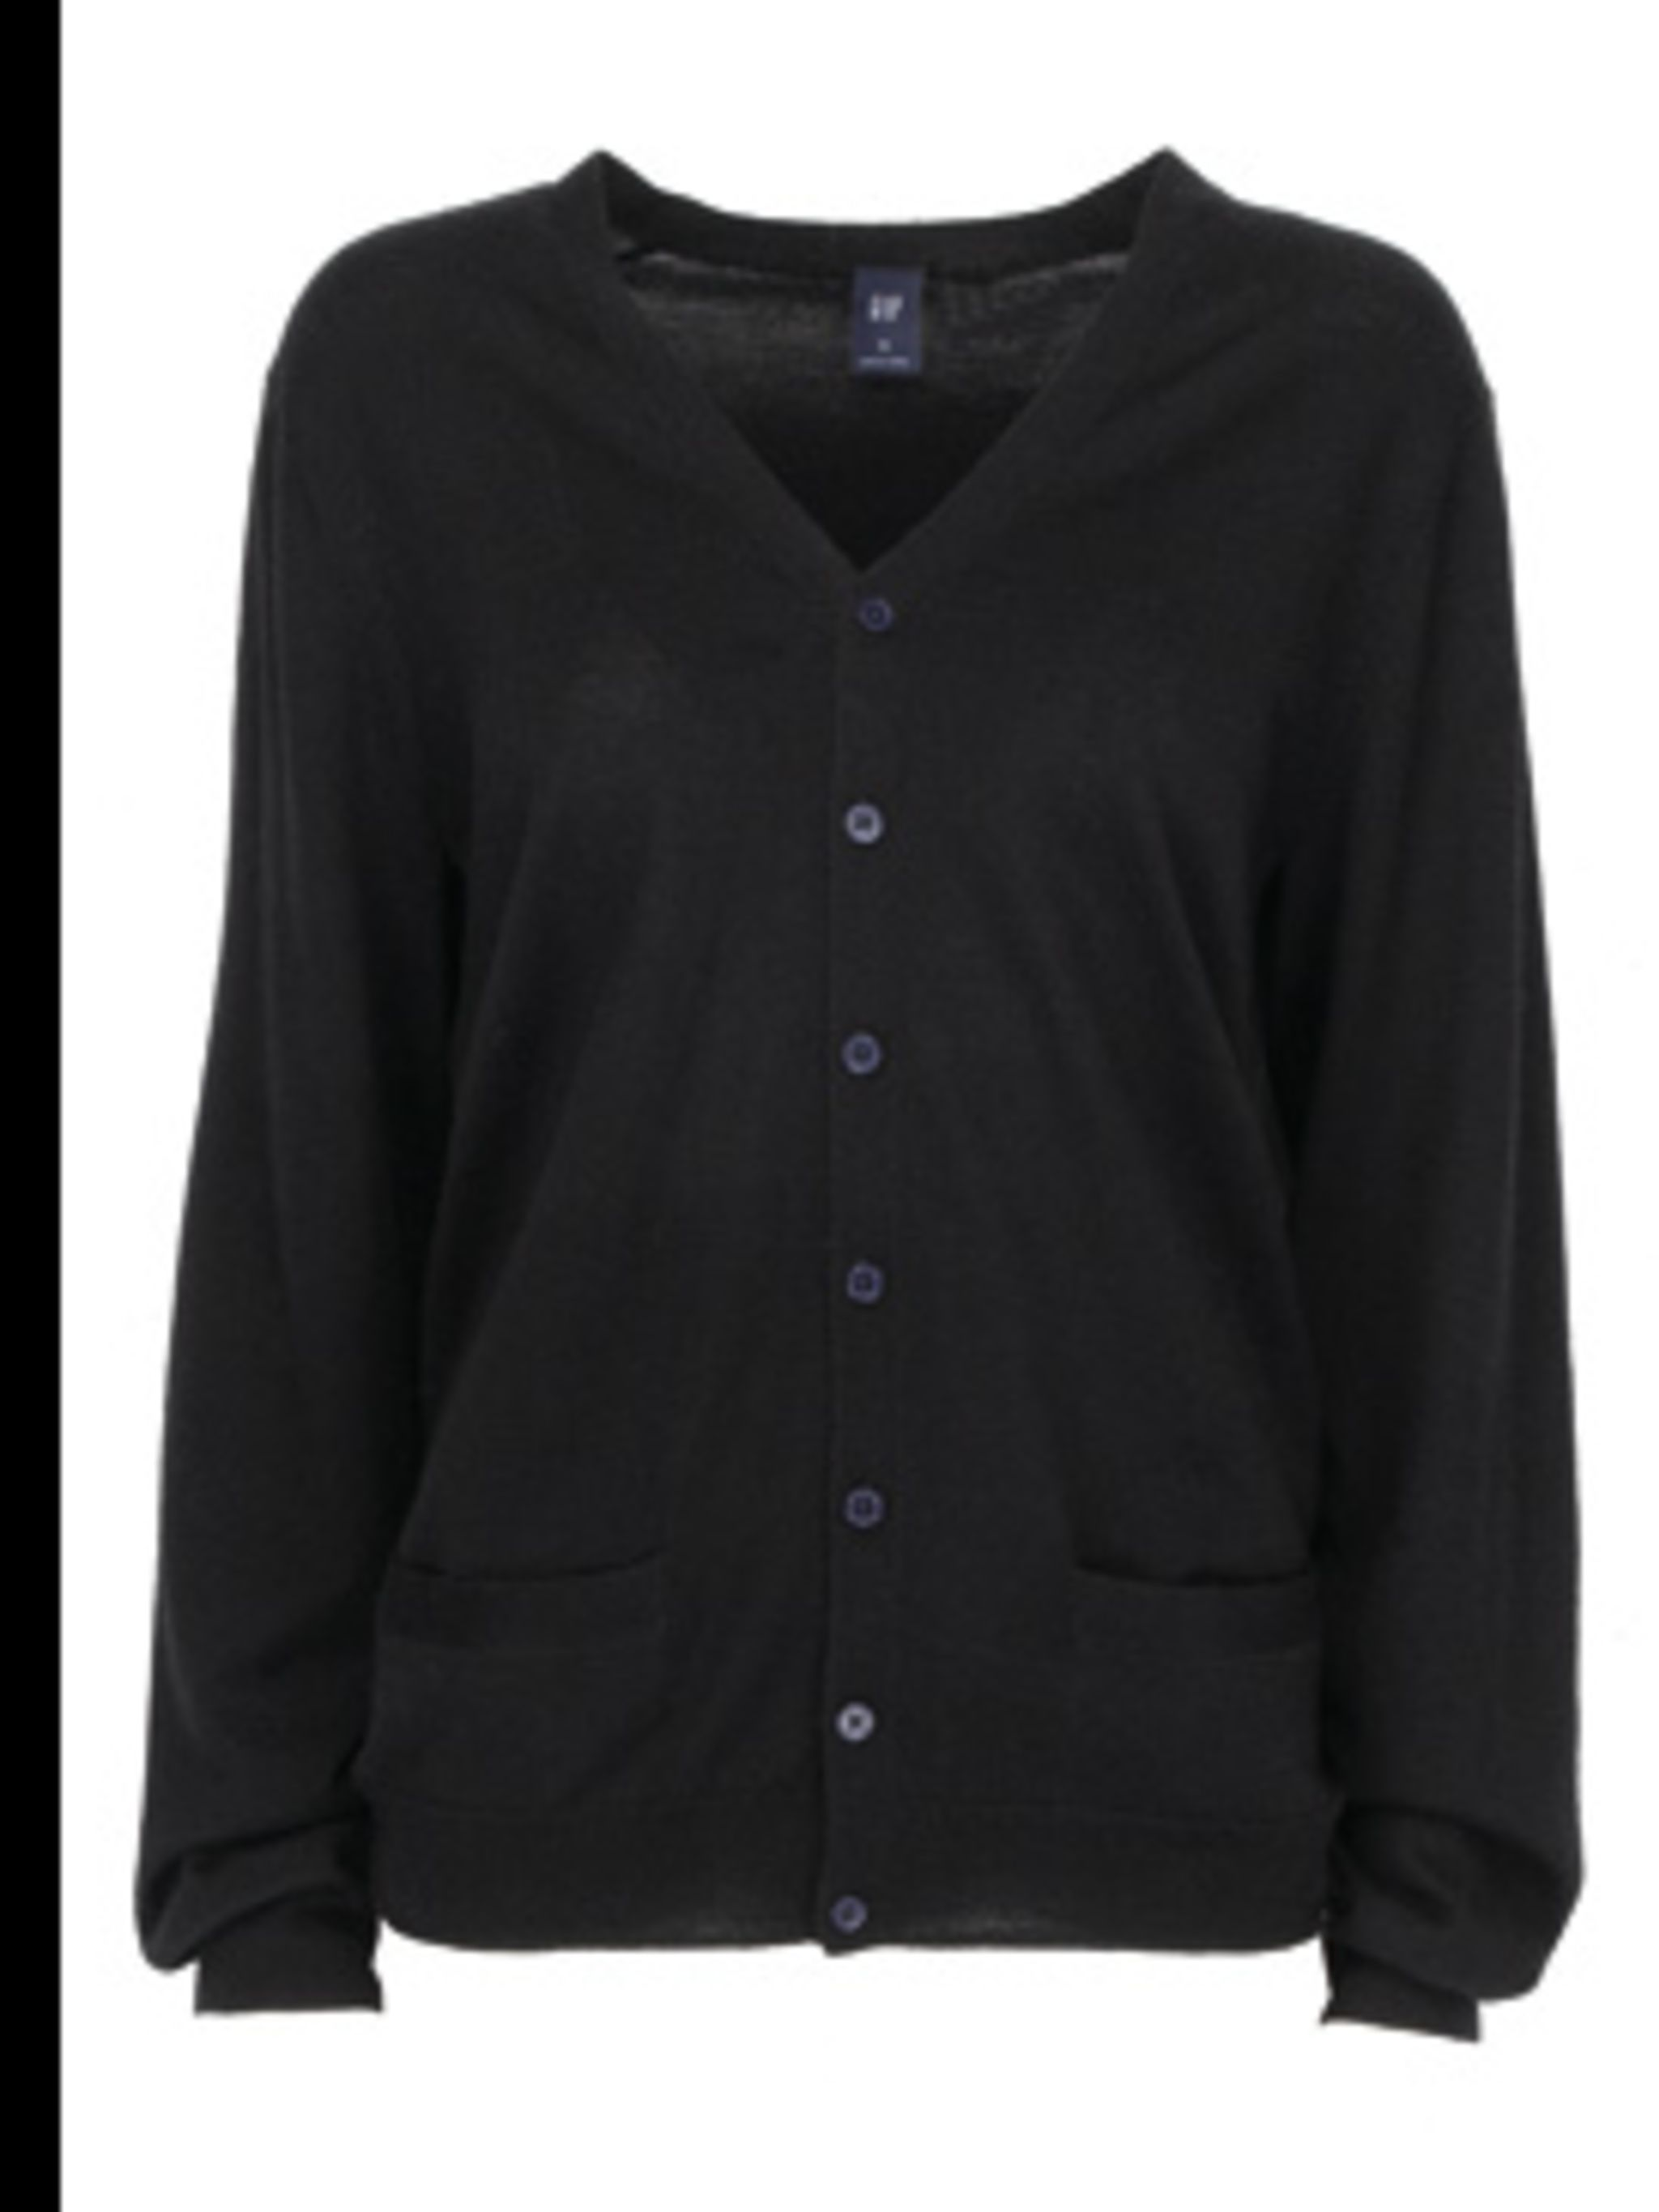 <p>Black cardigan by Gap, for stockists call 0800 427 789</p>